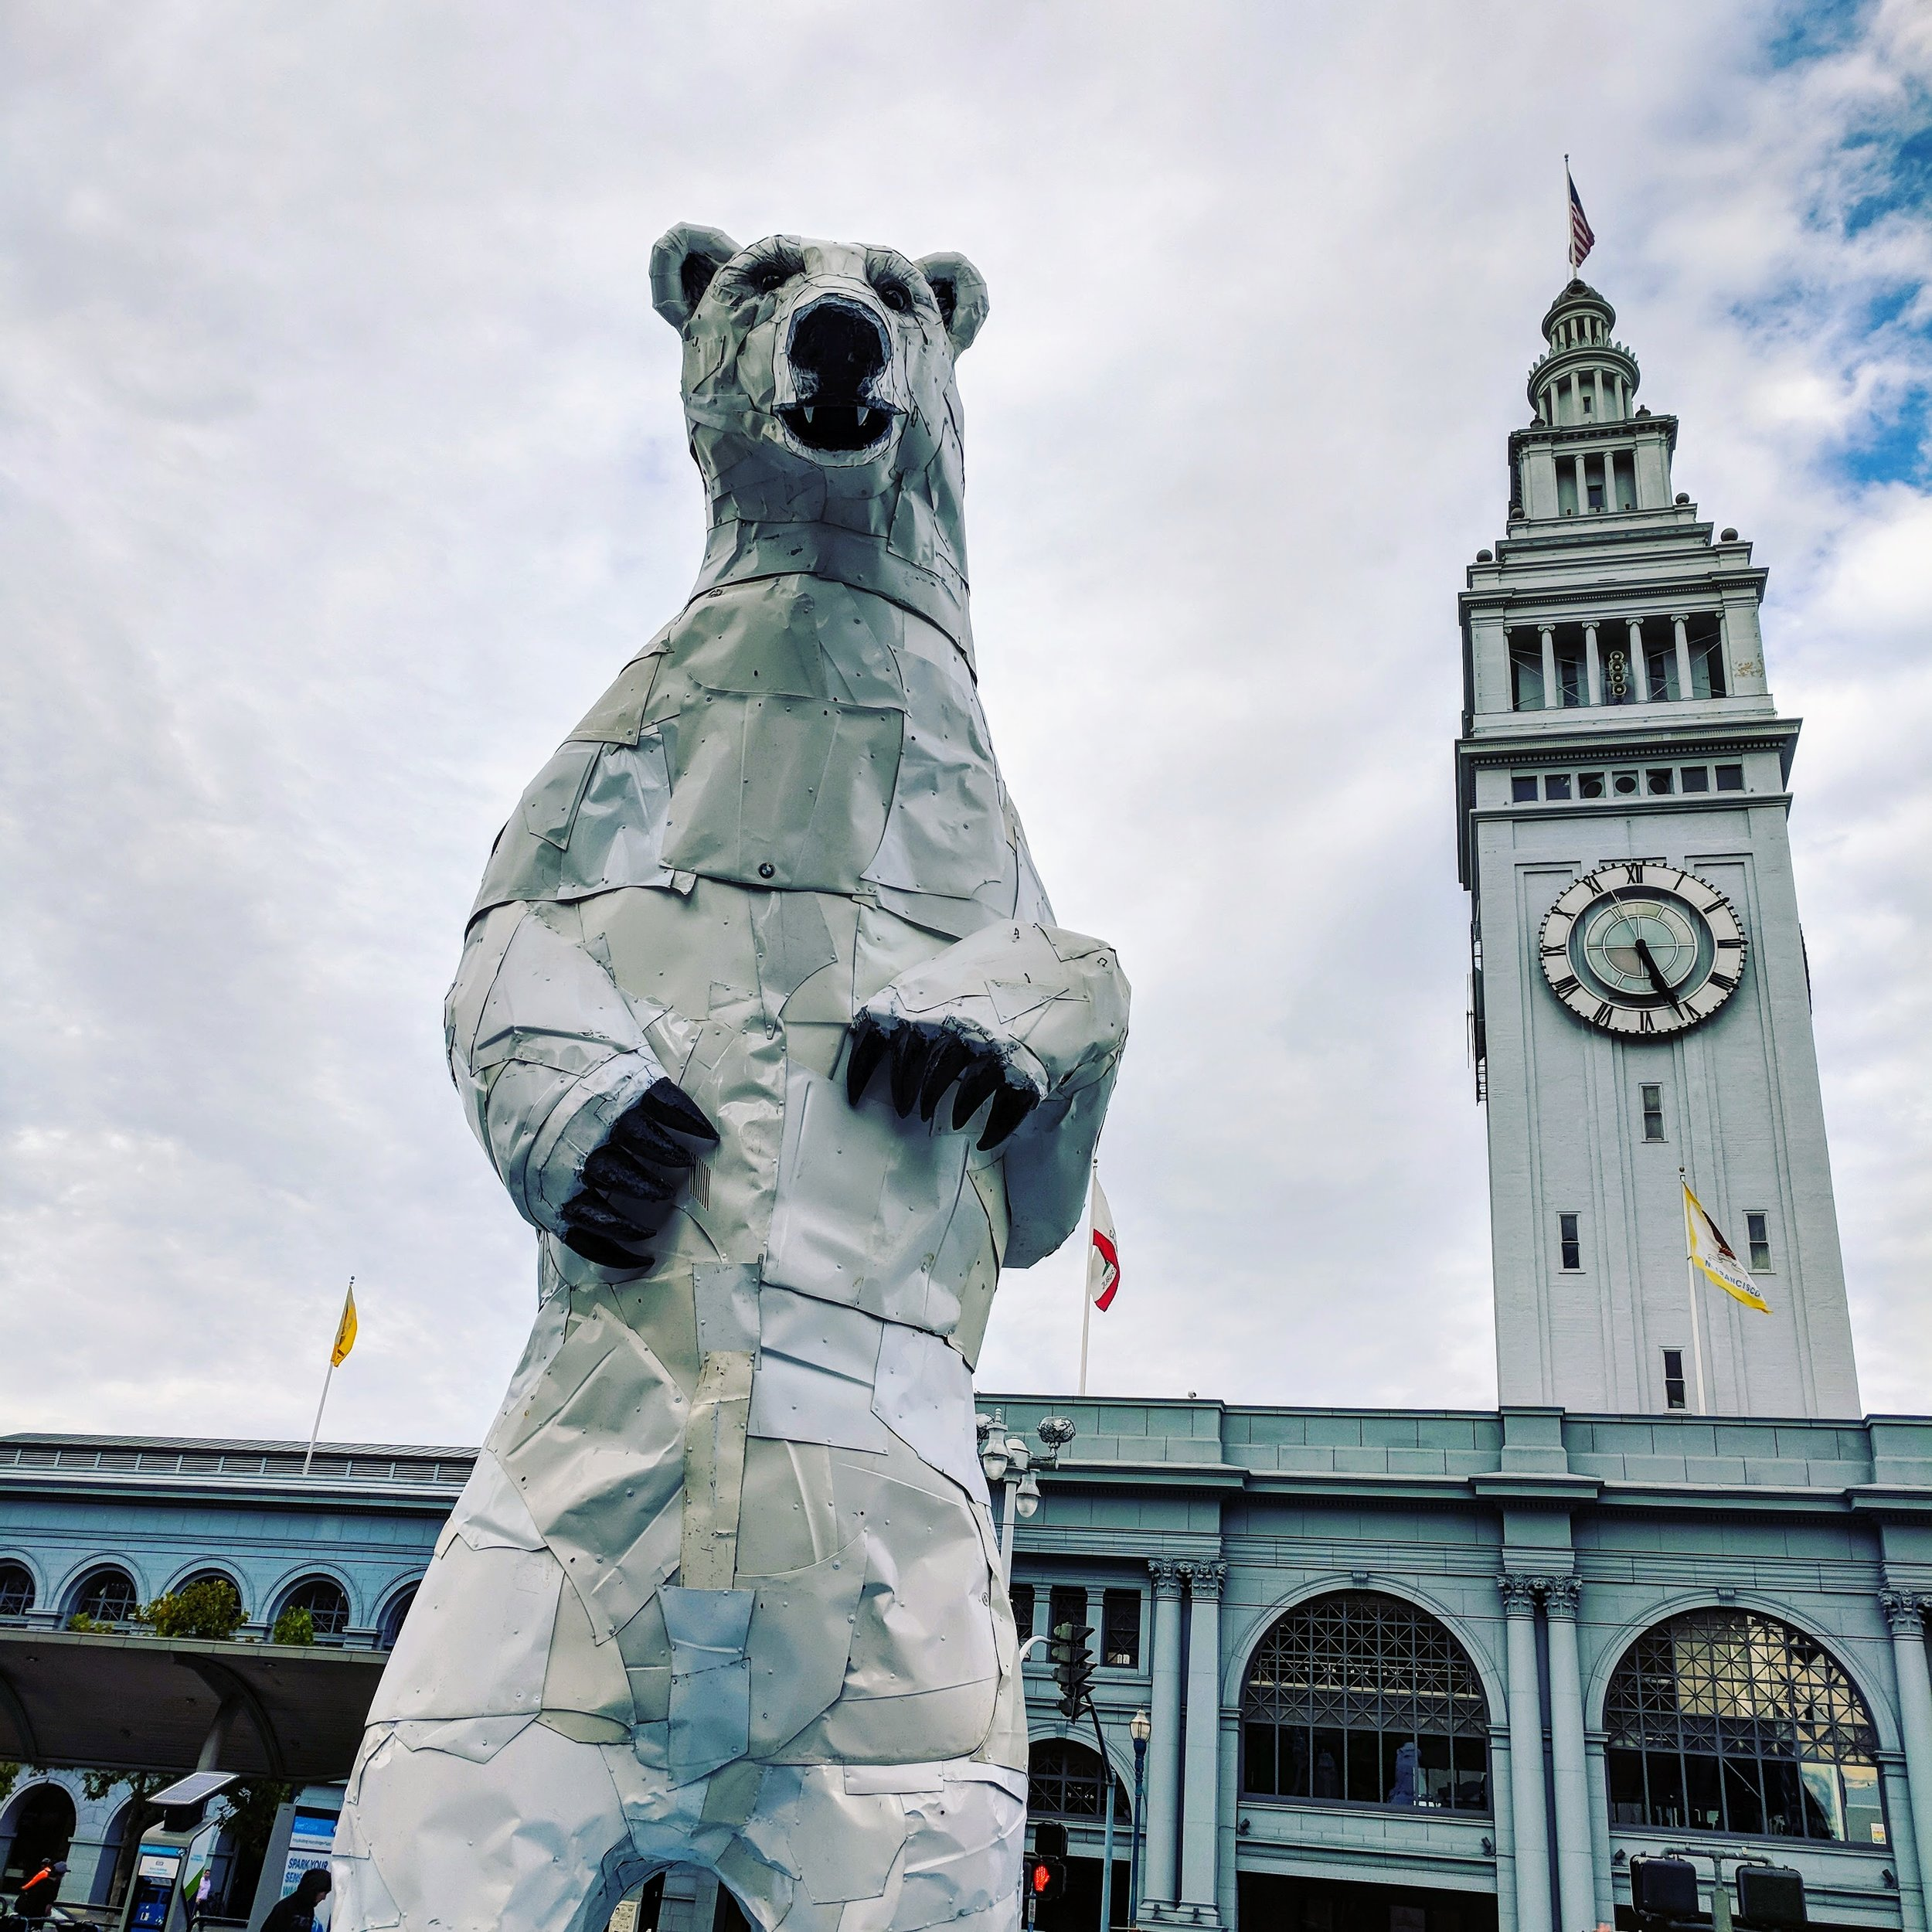 Bear Sculpture at the ferry building during a climate conference in SF.